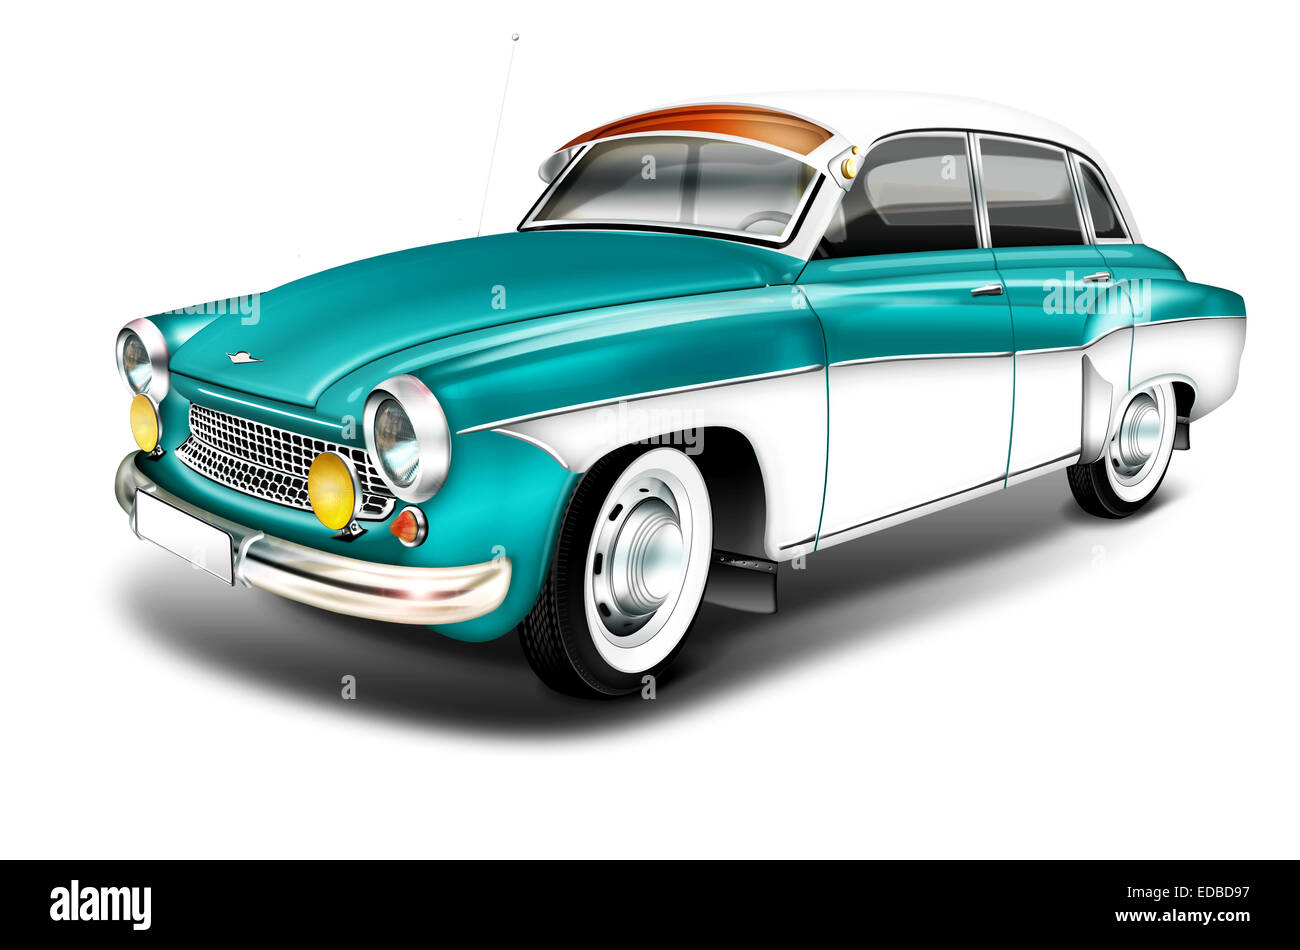 DDR vintage from the 60s, Wartburg 311, green-white, illustration - Stock Image